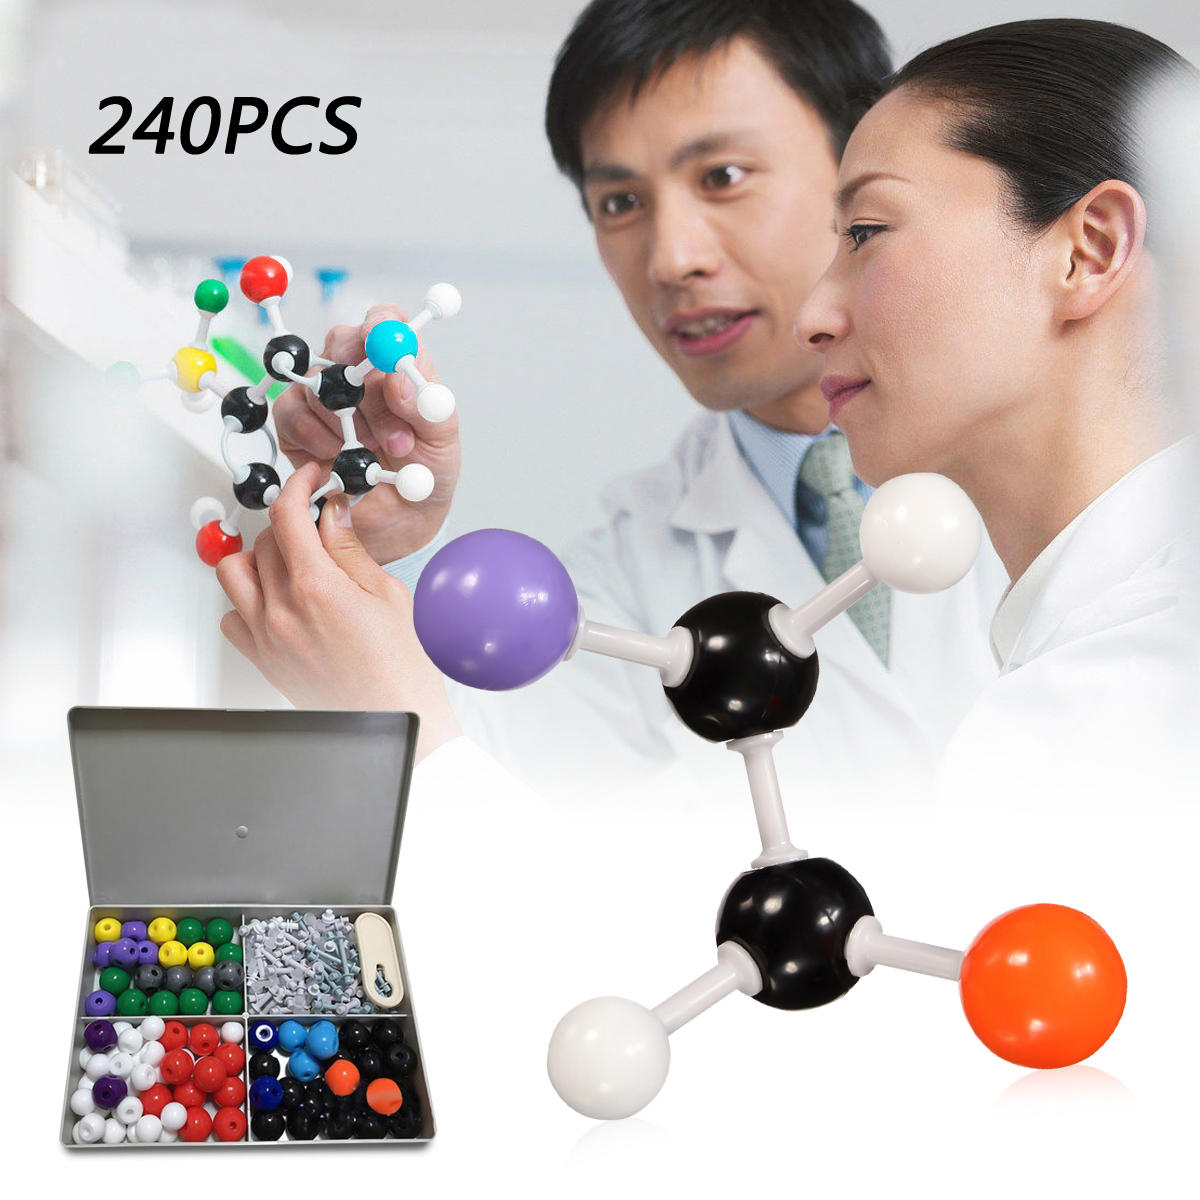 240Pcs Chemistry Molecular Molecules Model Kit General and Organic Chemistry Atom Bonds Student Set For School Lab Teaching model of molecular structure of organic chemistry tube formula presentation using teacher presentation teaching aids set